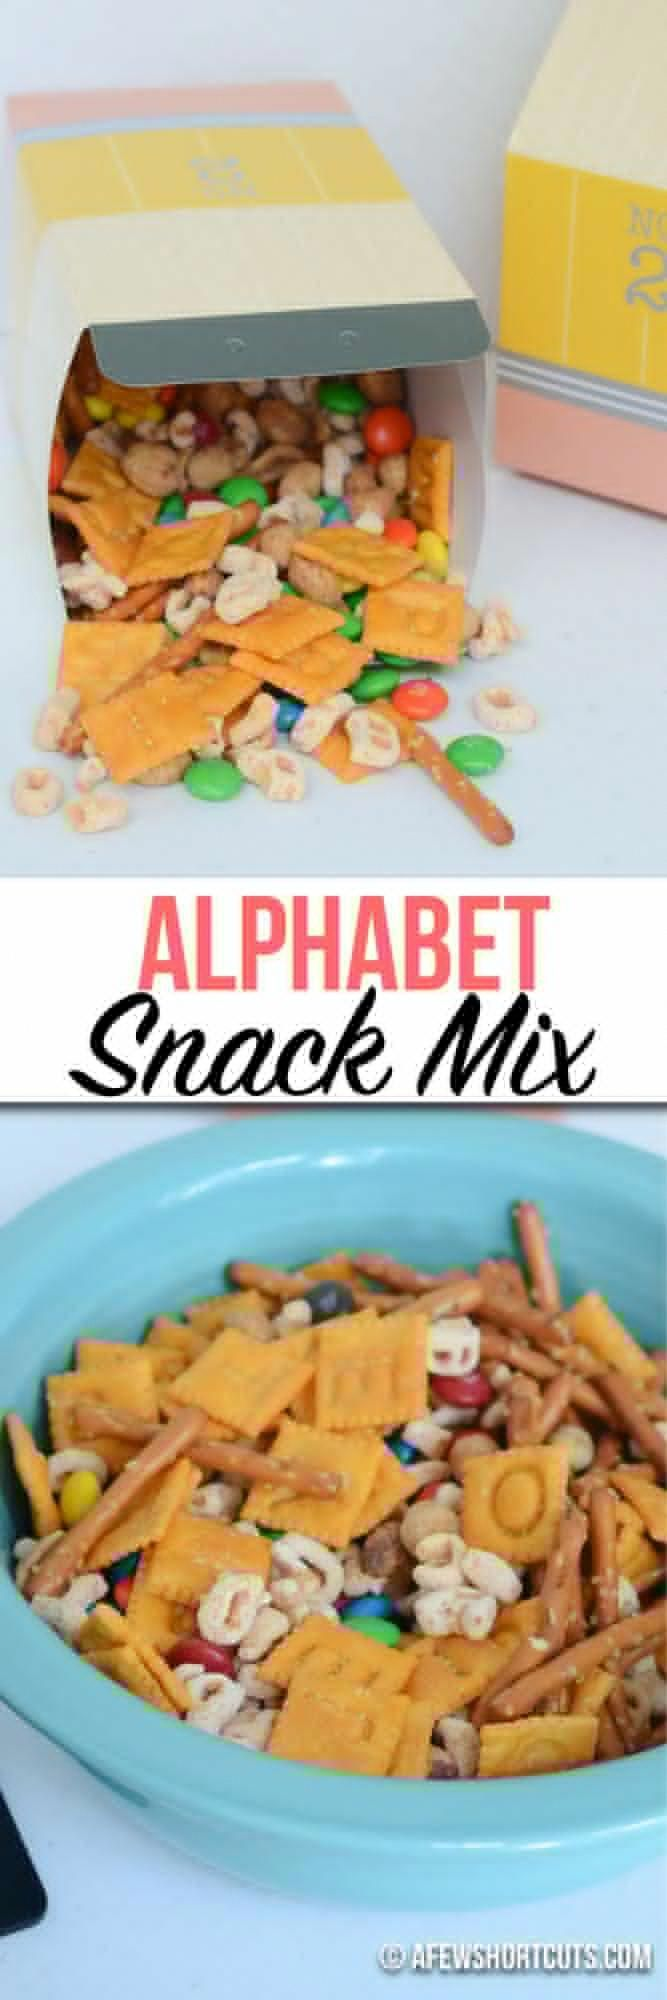 Who says you can't play & learn with your food. Check out this yummy Alphabet Sn...,  #alphabet #check #Food #KidsSnackmix #Learn #play #yummy